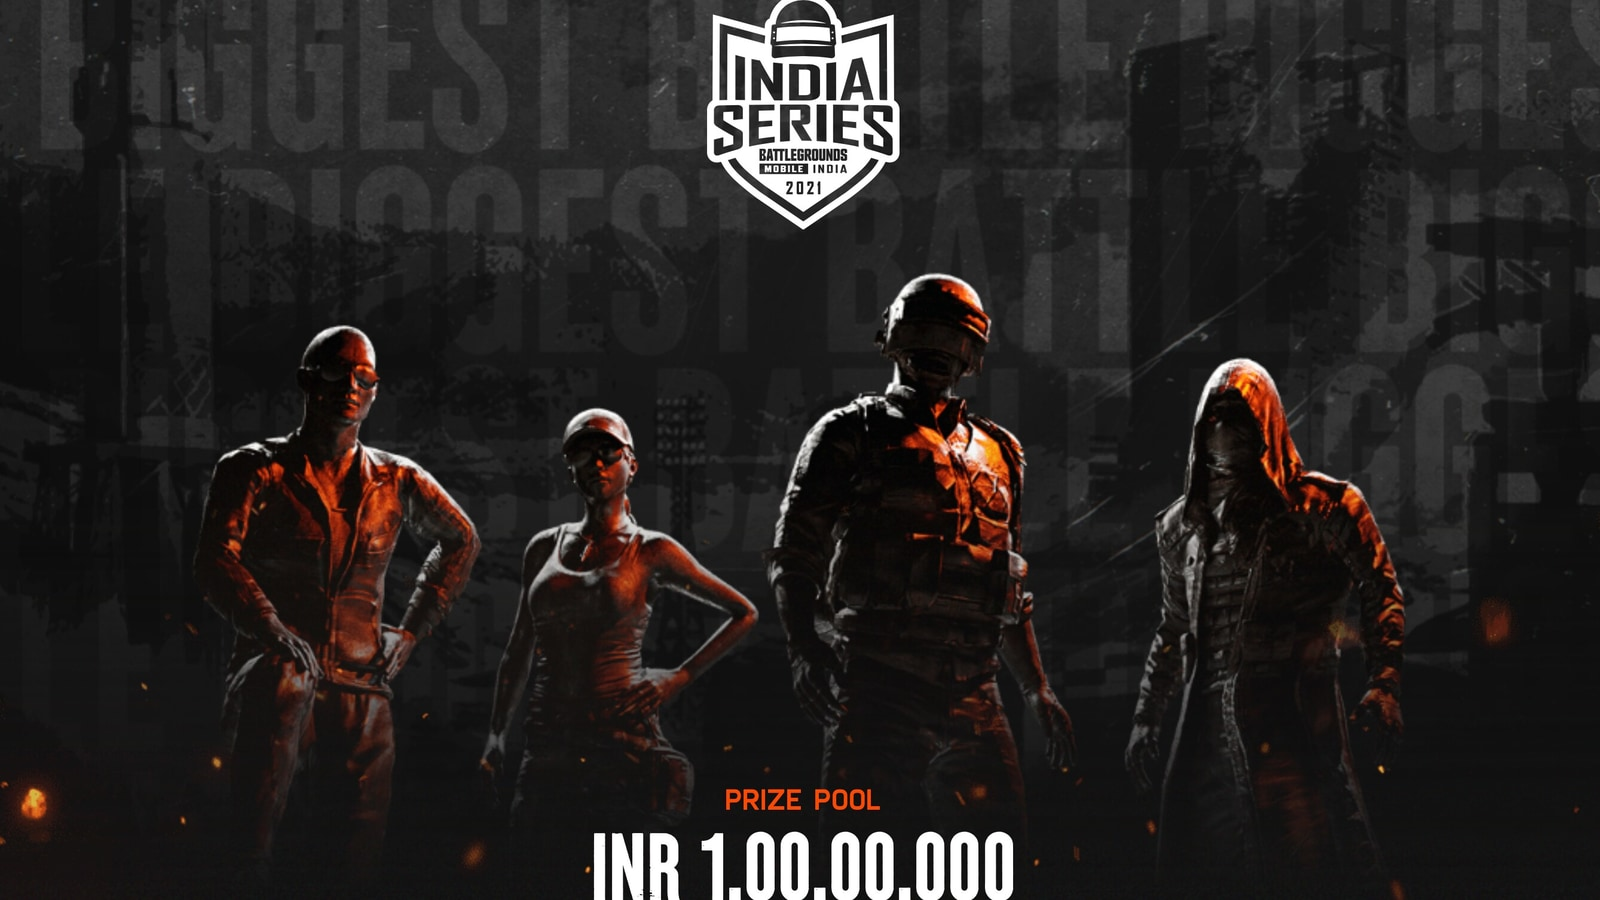 Battlegrounds Mobile India announces the Battlegrounds Mobile India Series 2021 tournament with a prize of ₹ 1 cr